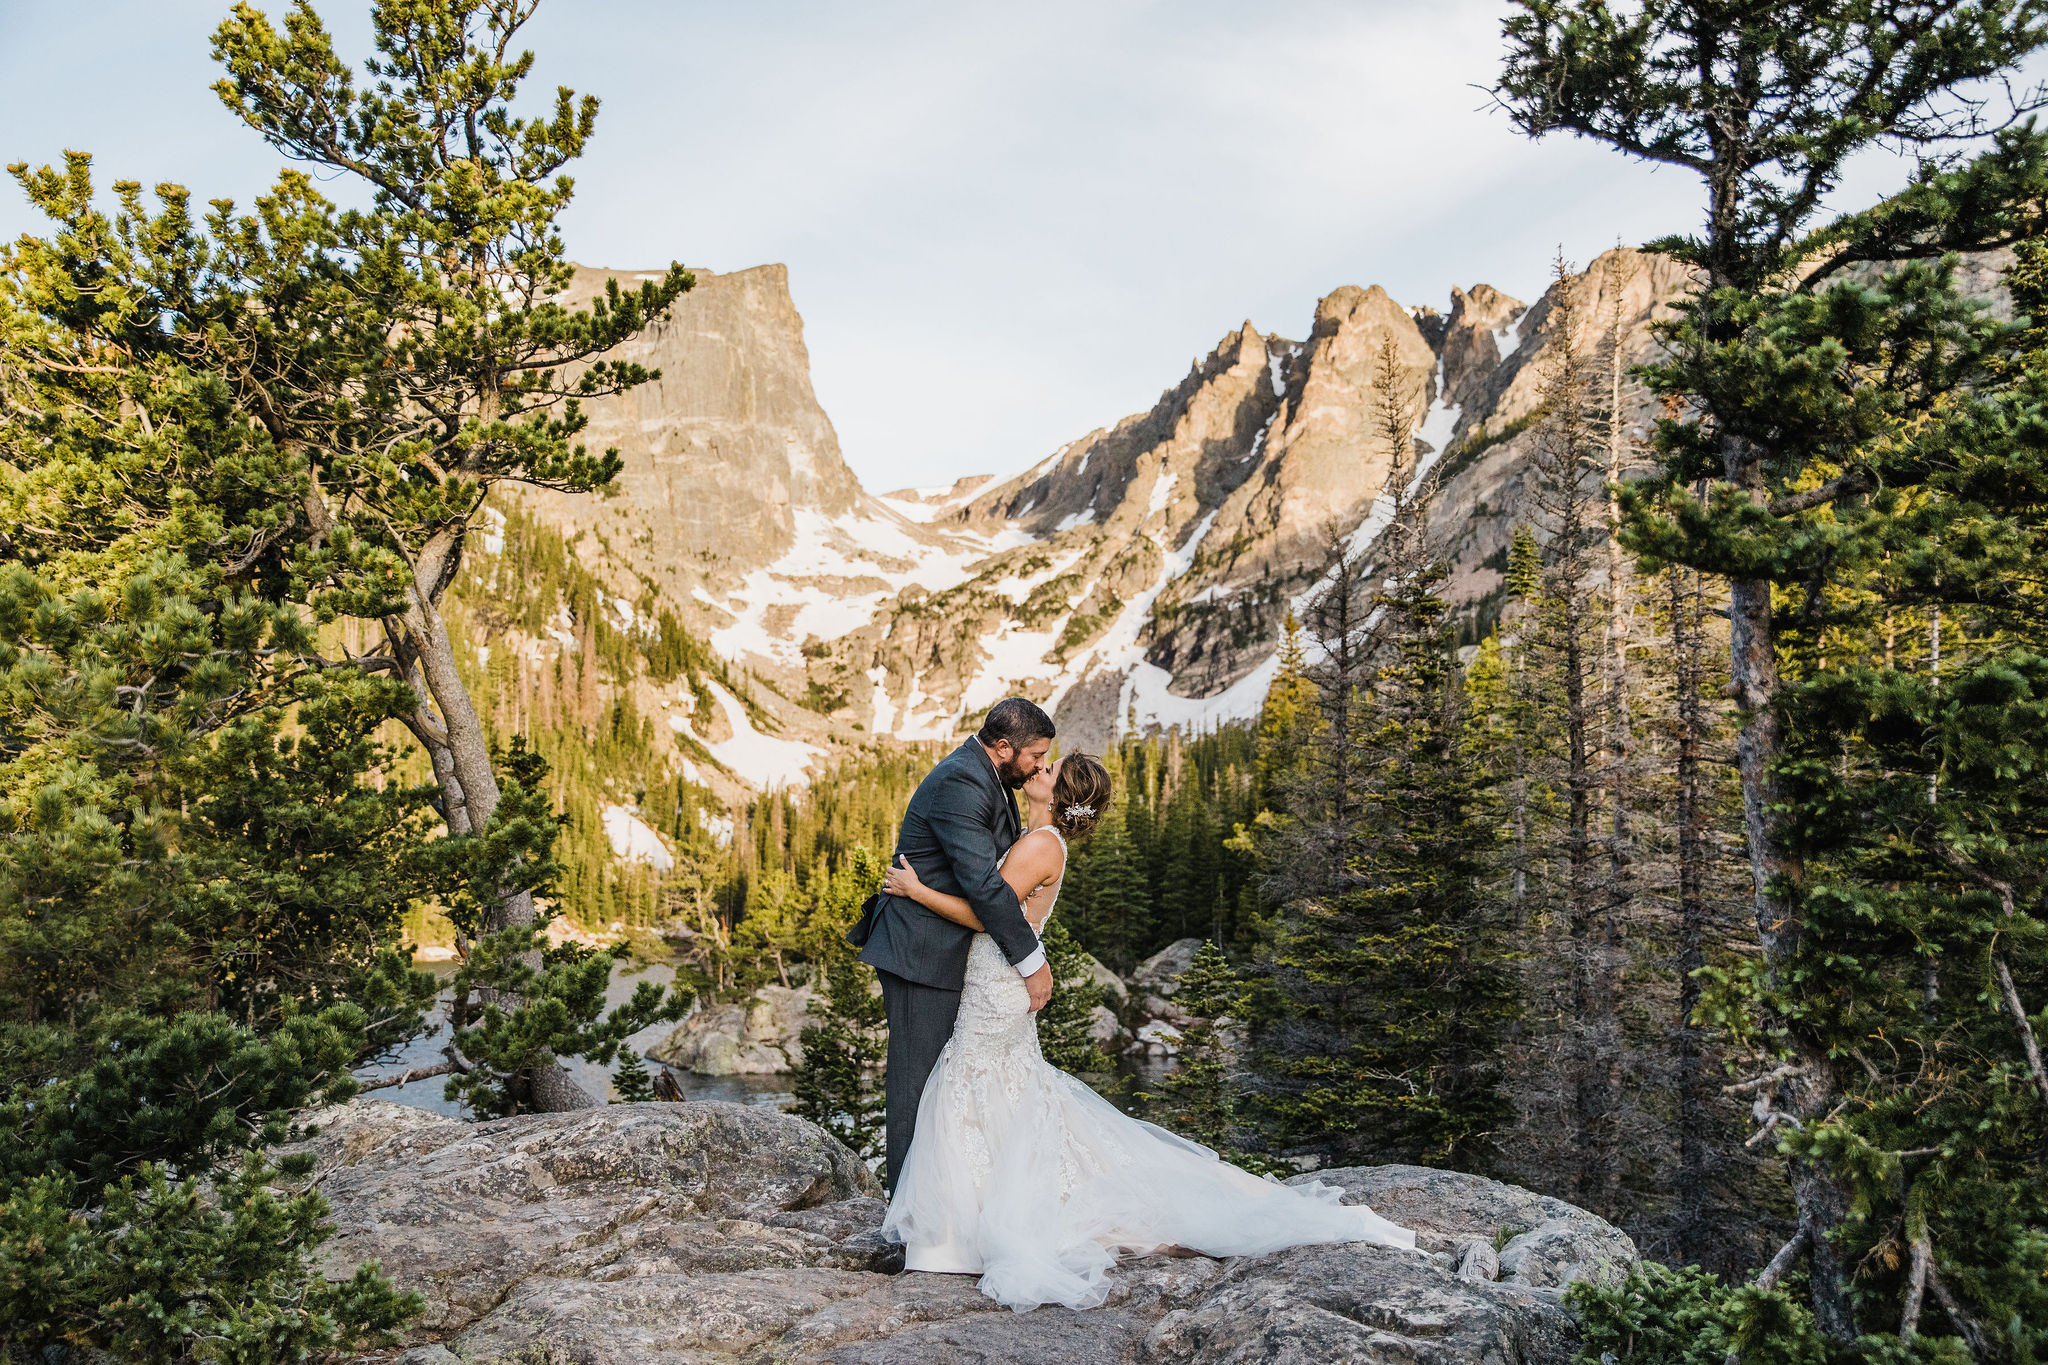 Colorado Elopement Photographer | Sunrise Alpine Lake Elopement